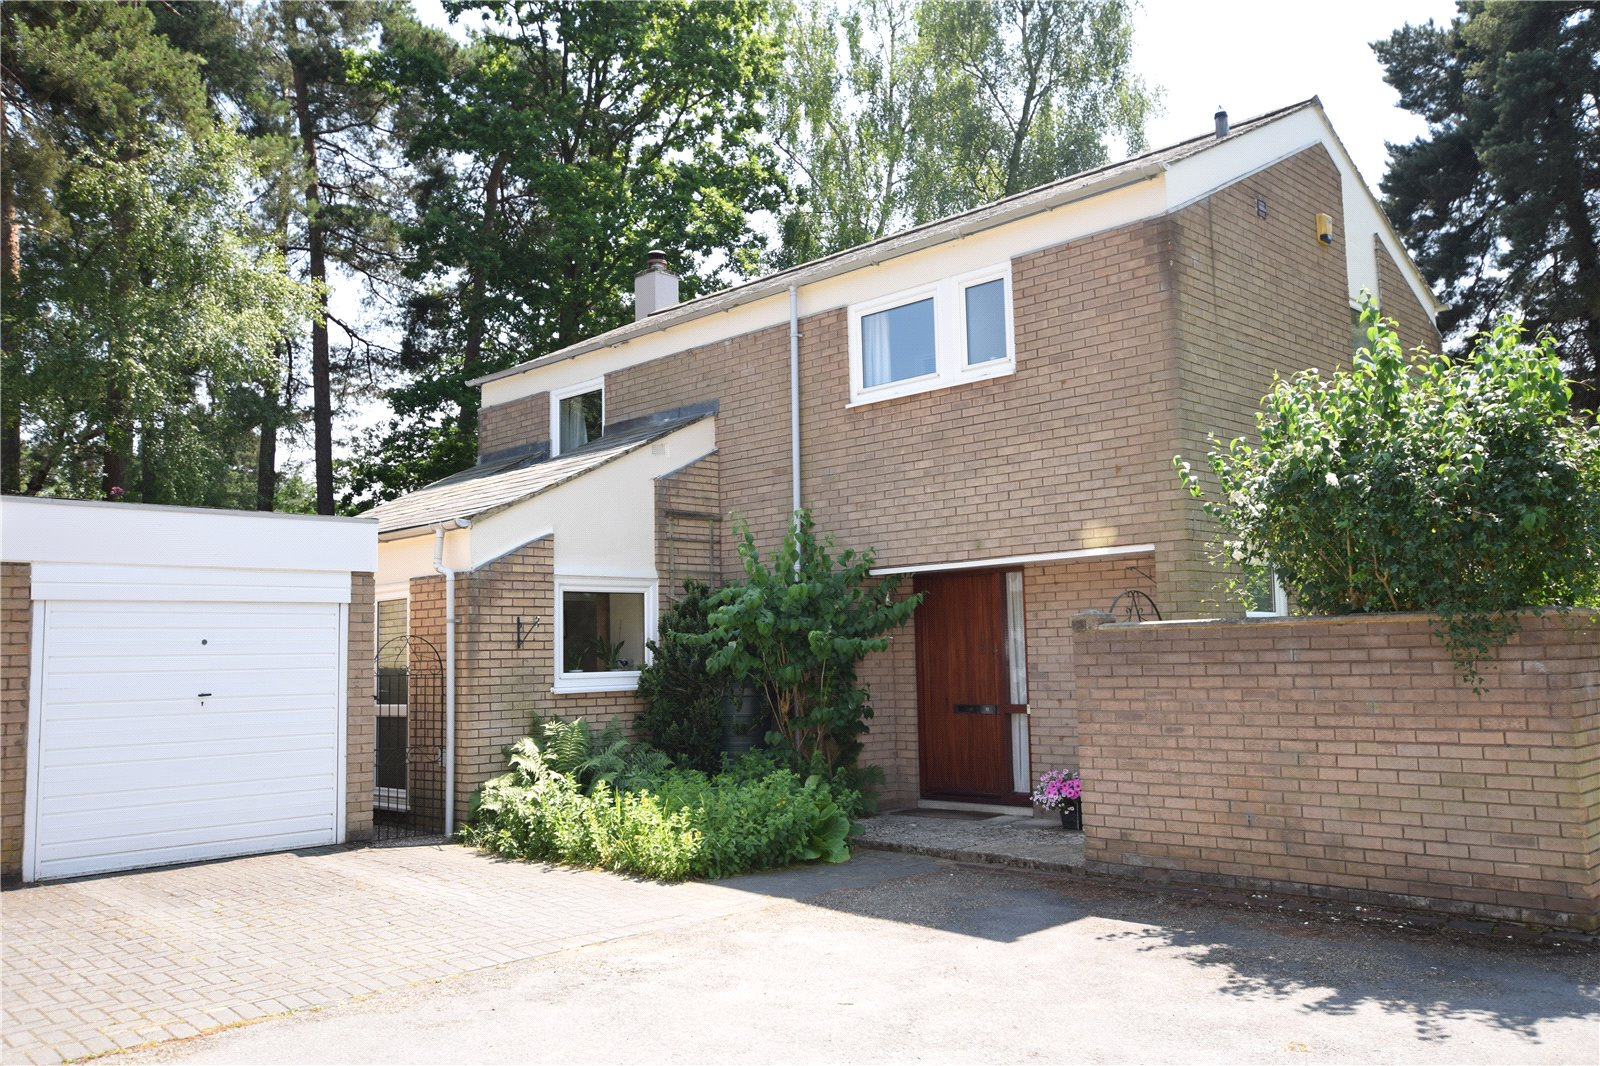 4 Bedrooms Detached House for sale in Merlewood, Bracknell, Berkshire, RG12